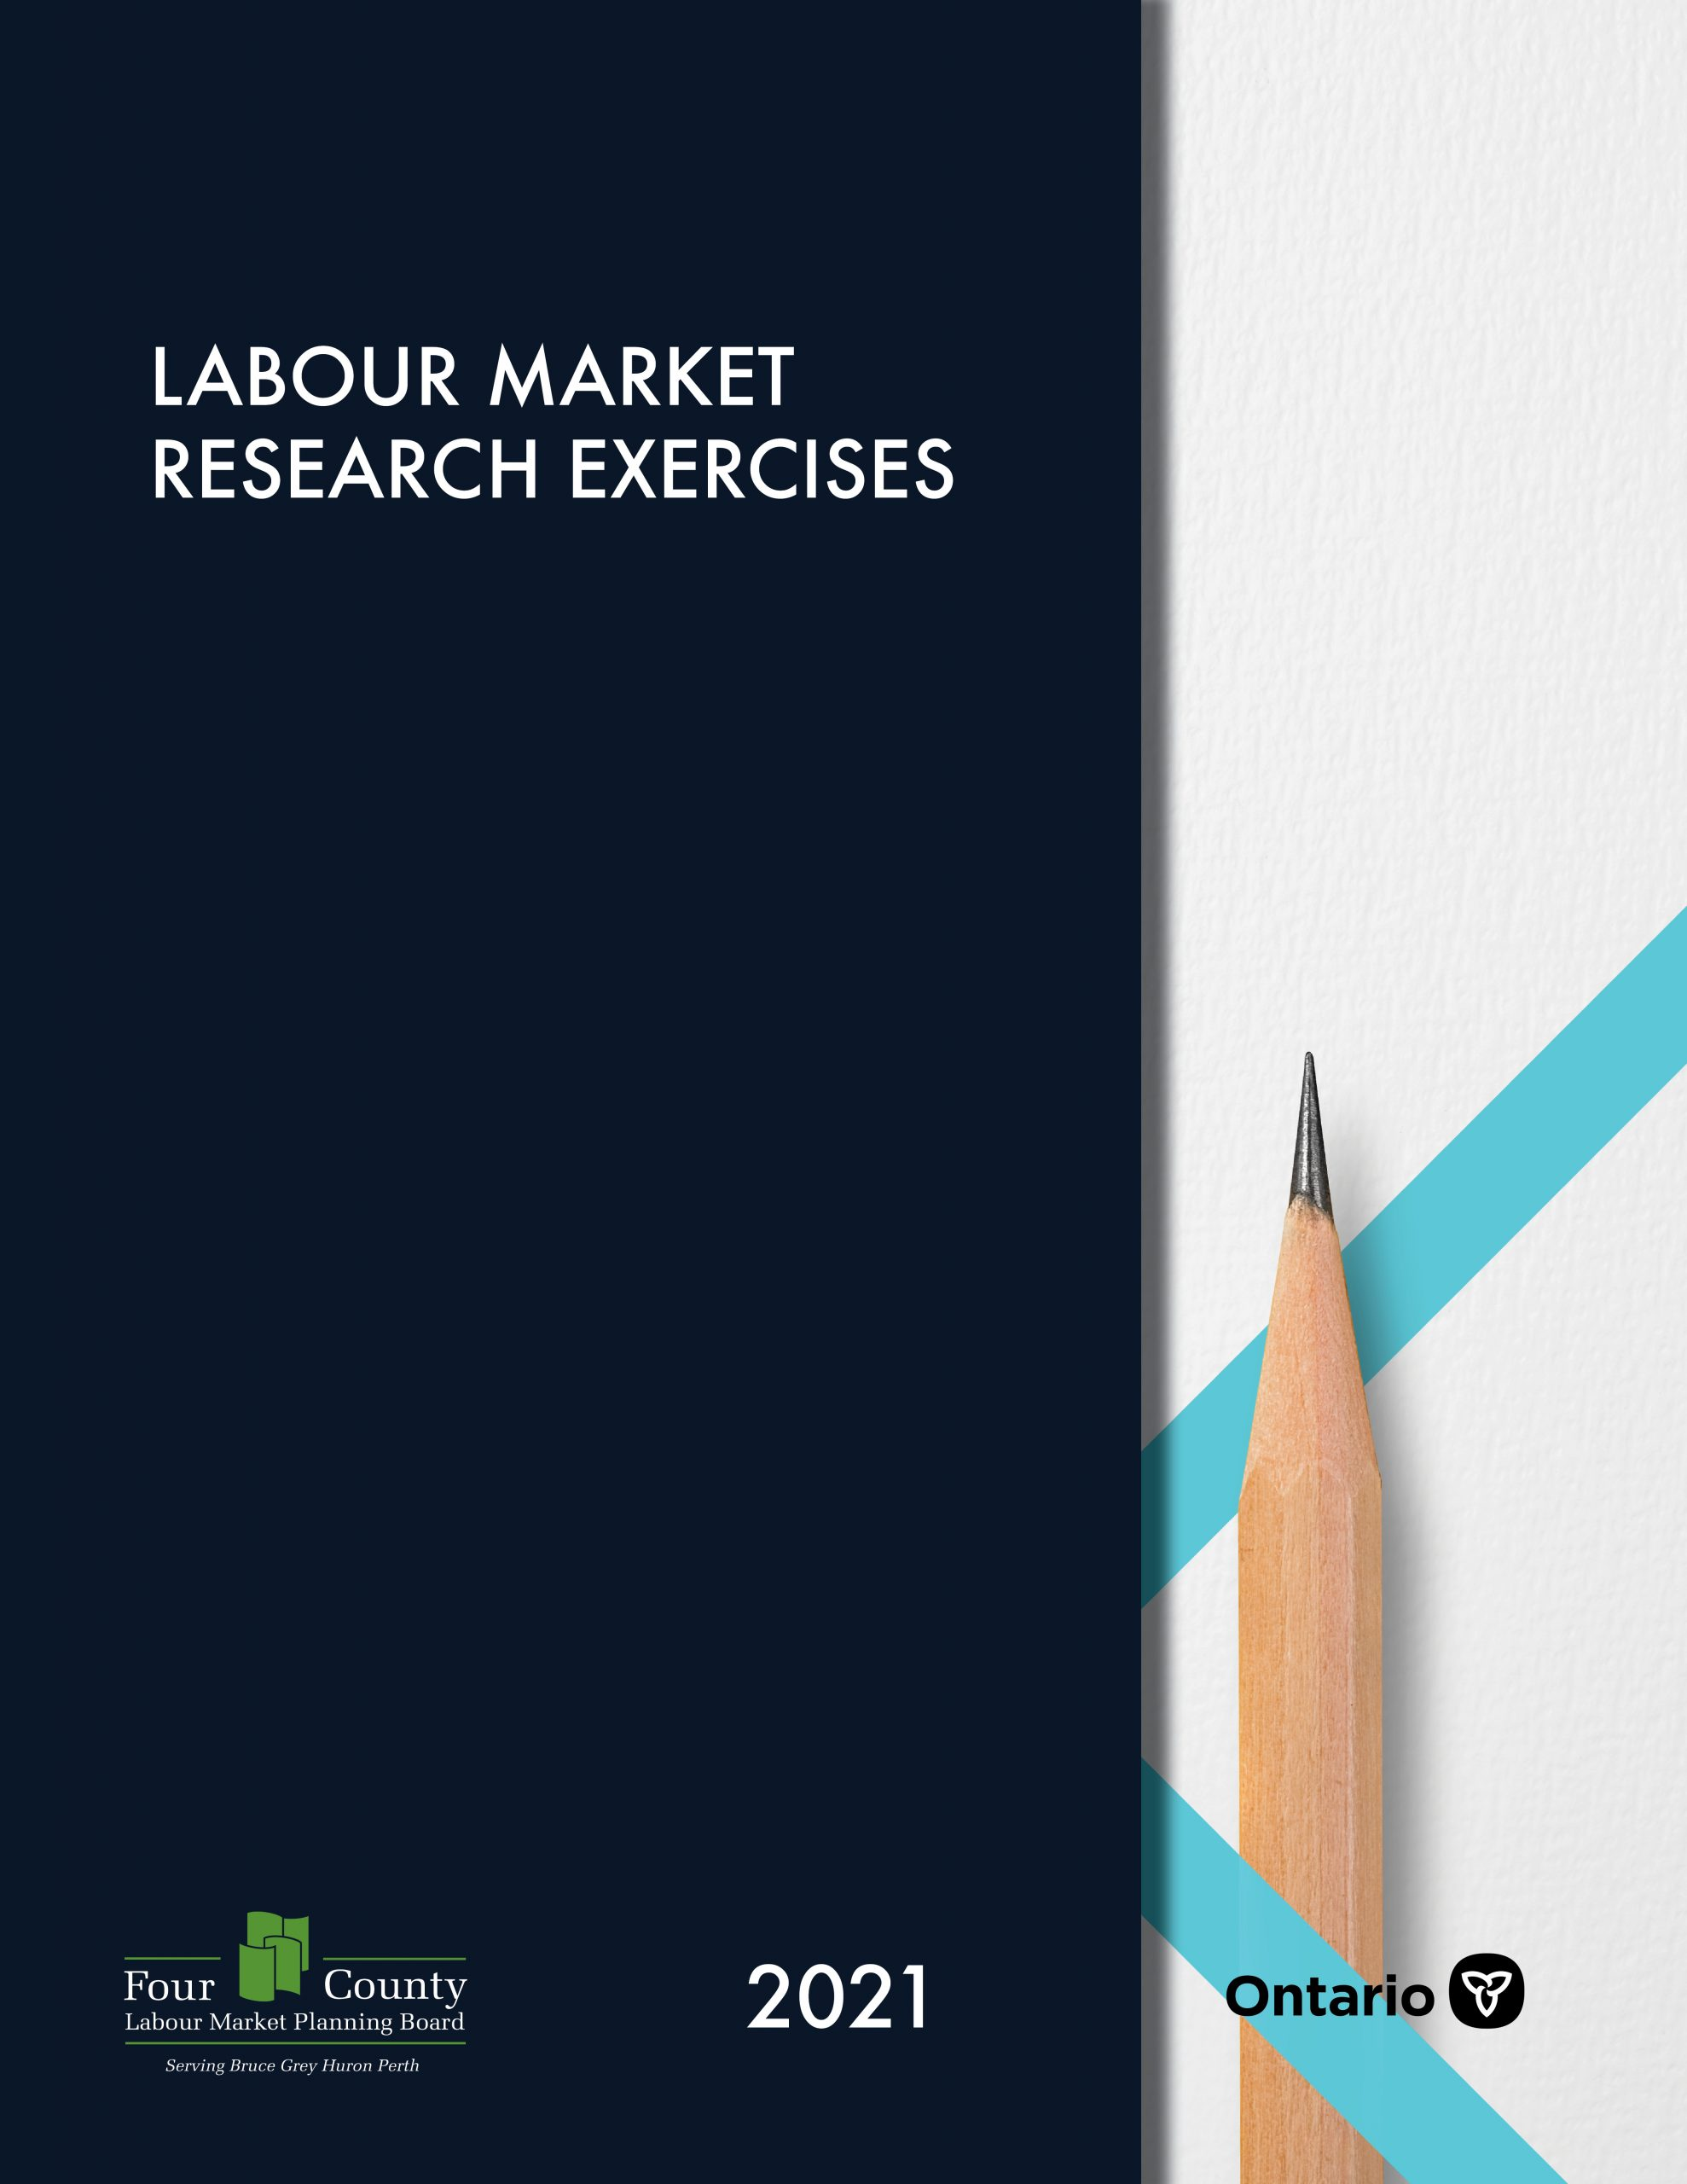 Labour Market Research Exercises COVER scaled